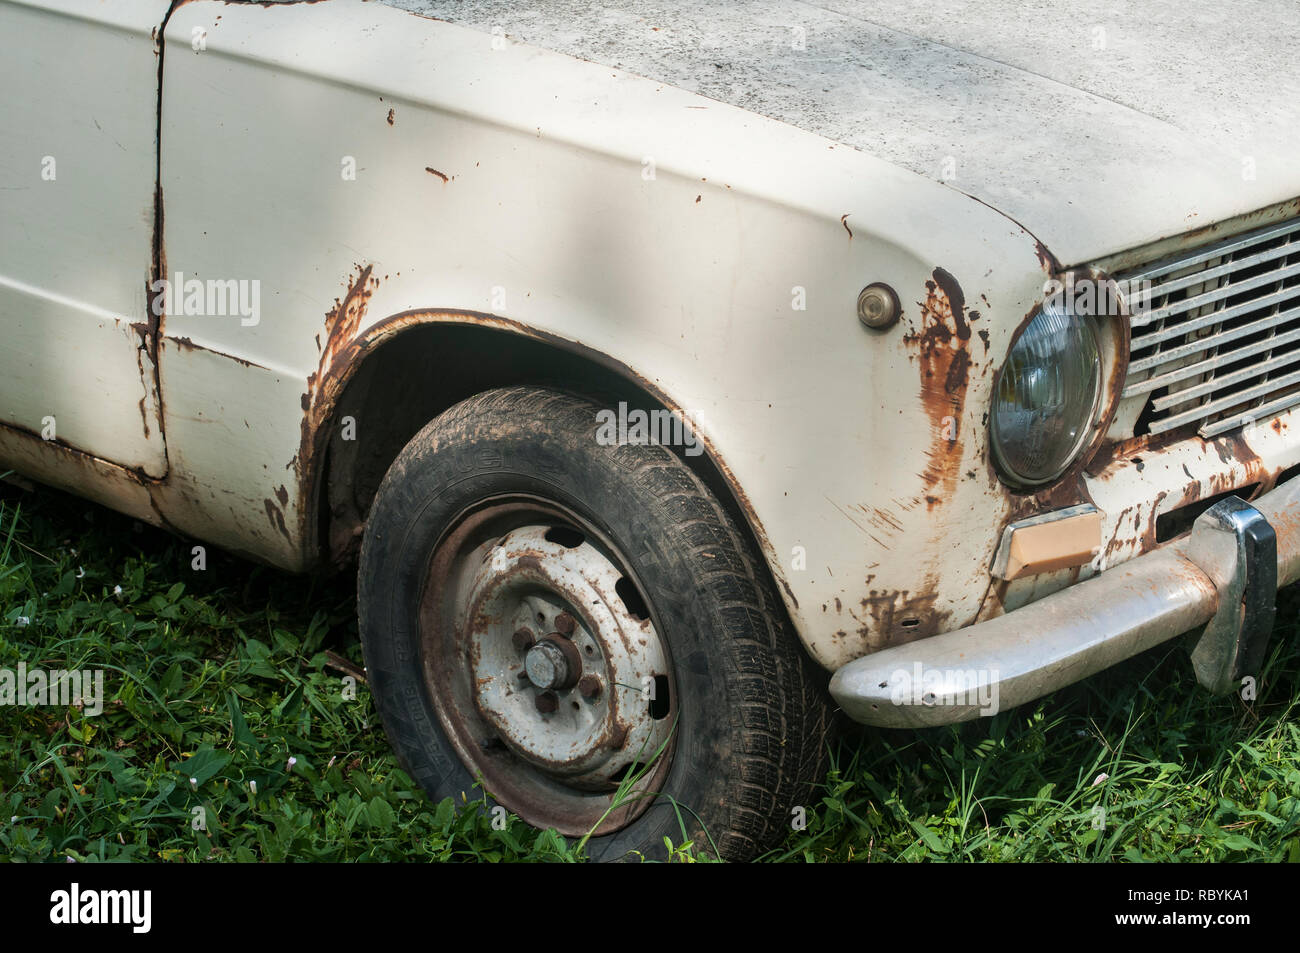 Old weathered abandoned neglected rusty broken vintage obsolete car closeup - Stock Image